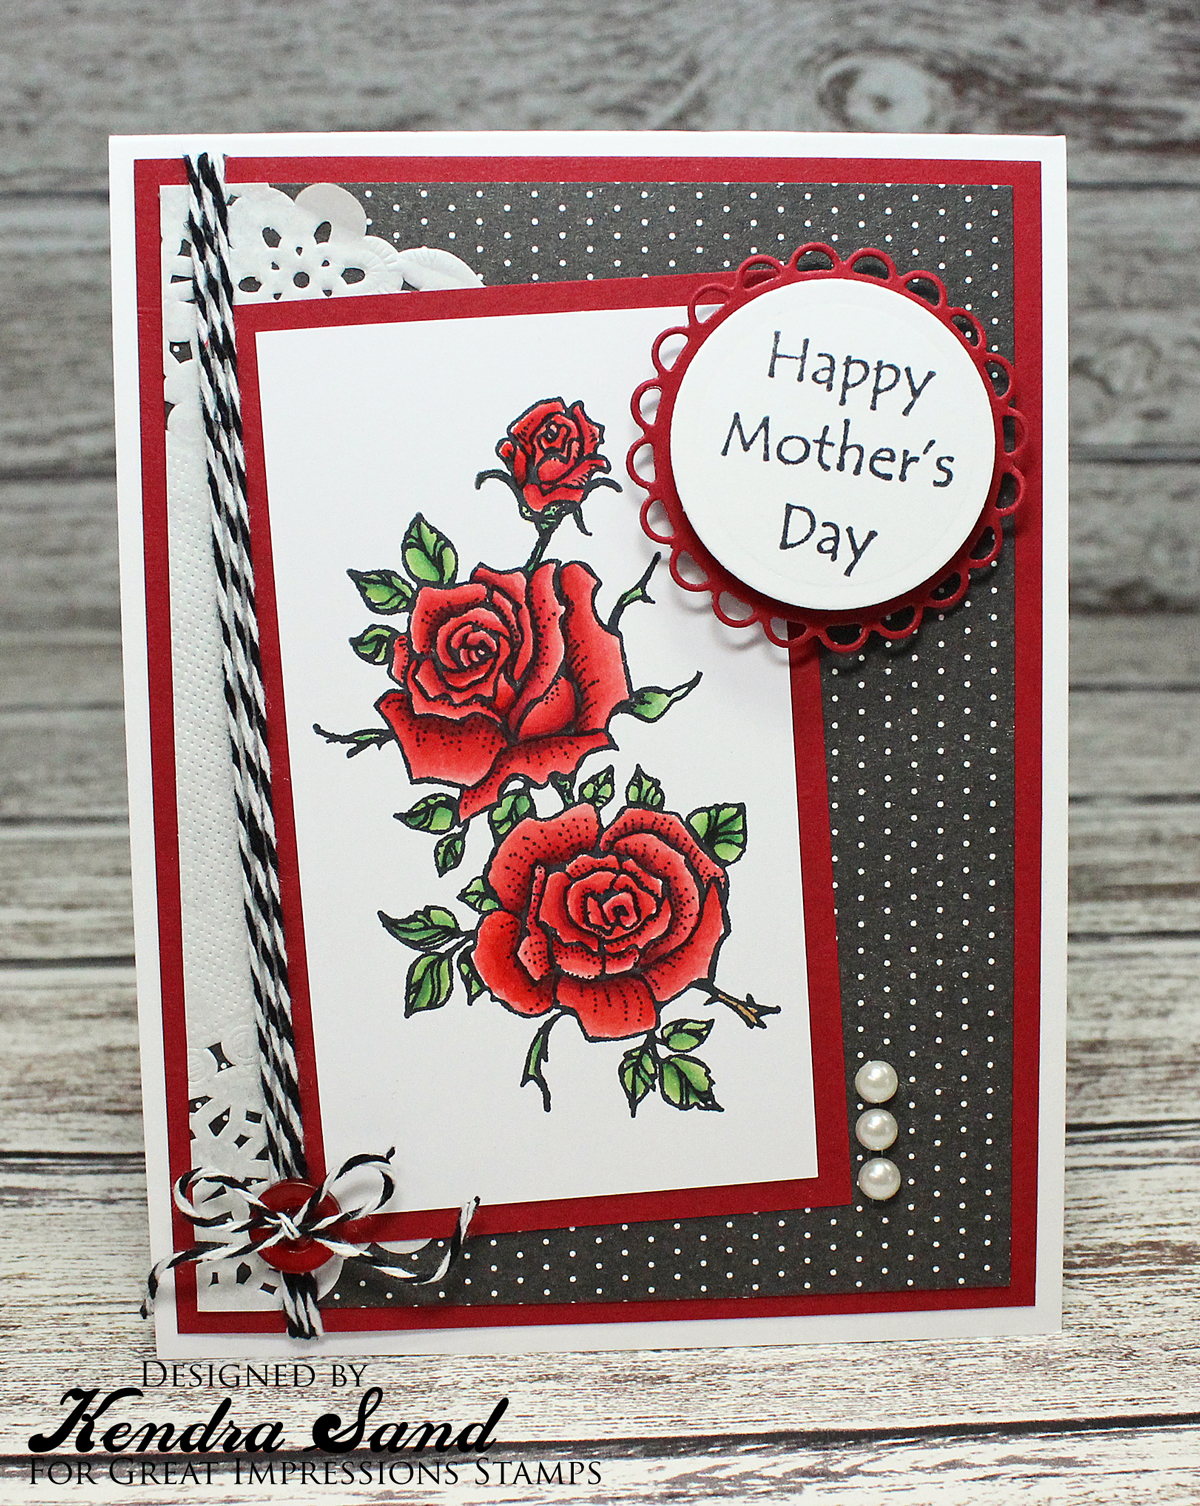 Luv 2 Scrap n' Make Cards: Happy Mother's Day with GI